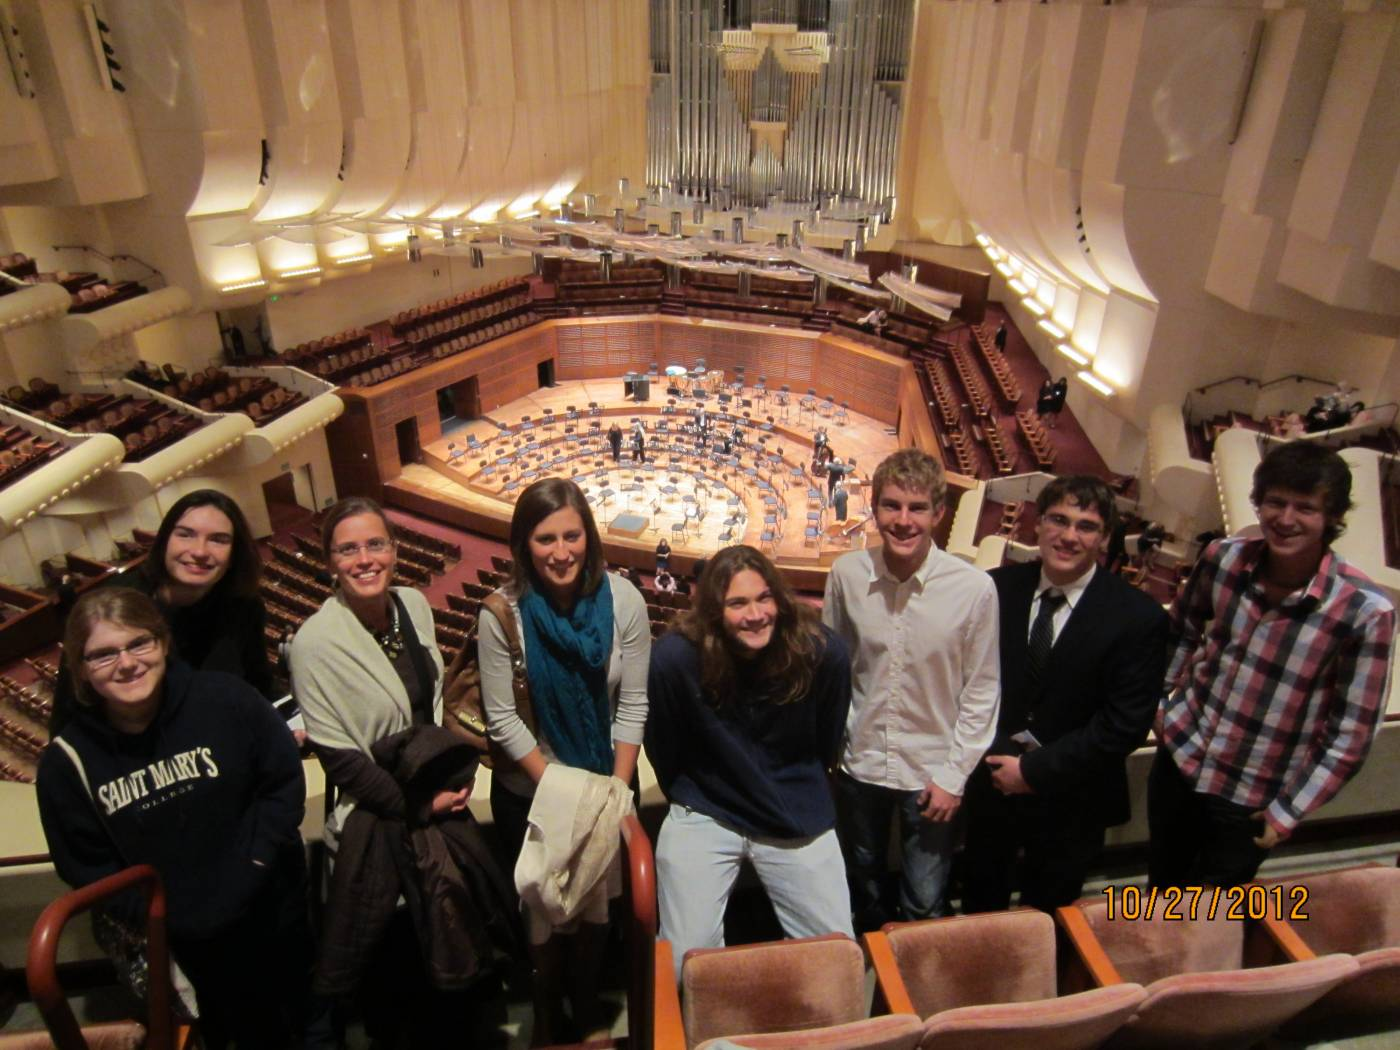 German 1 at the SF Symphony